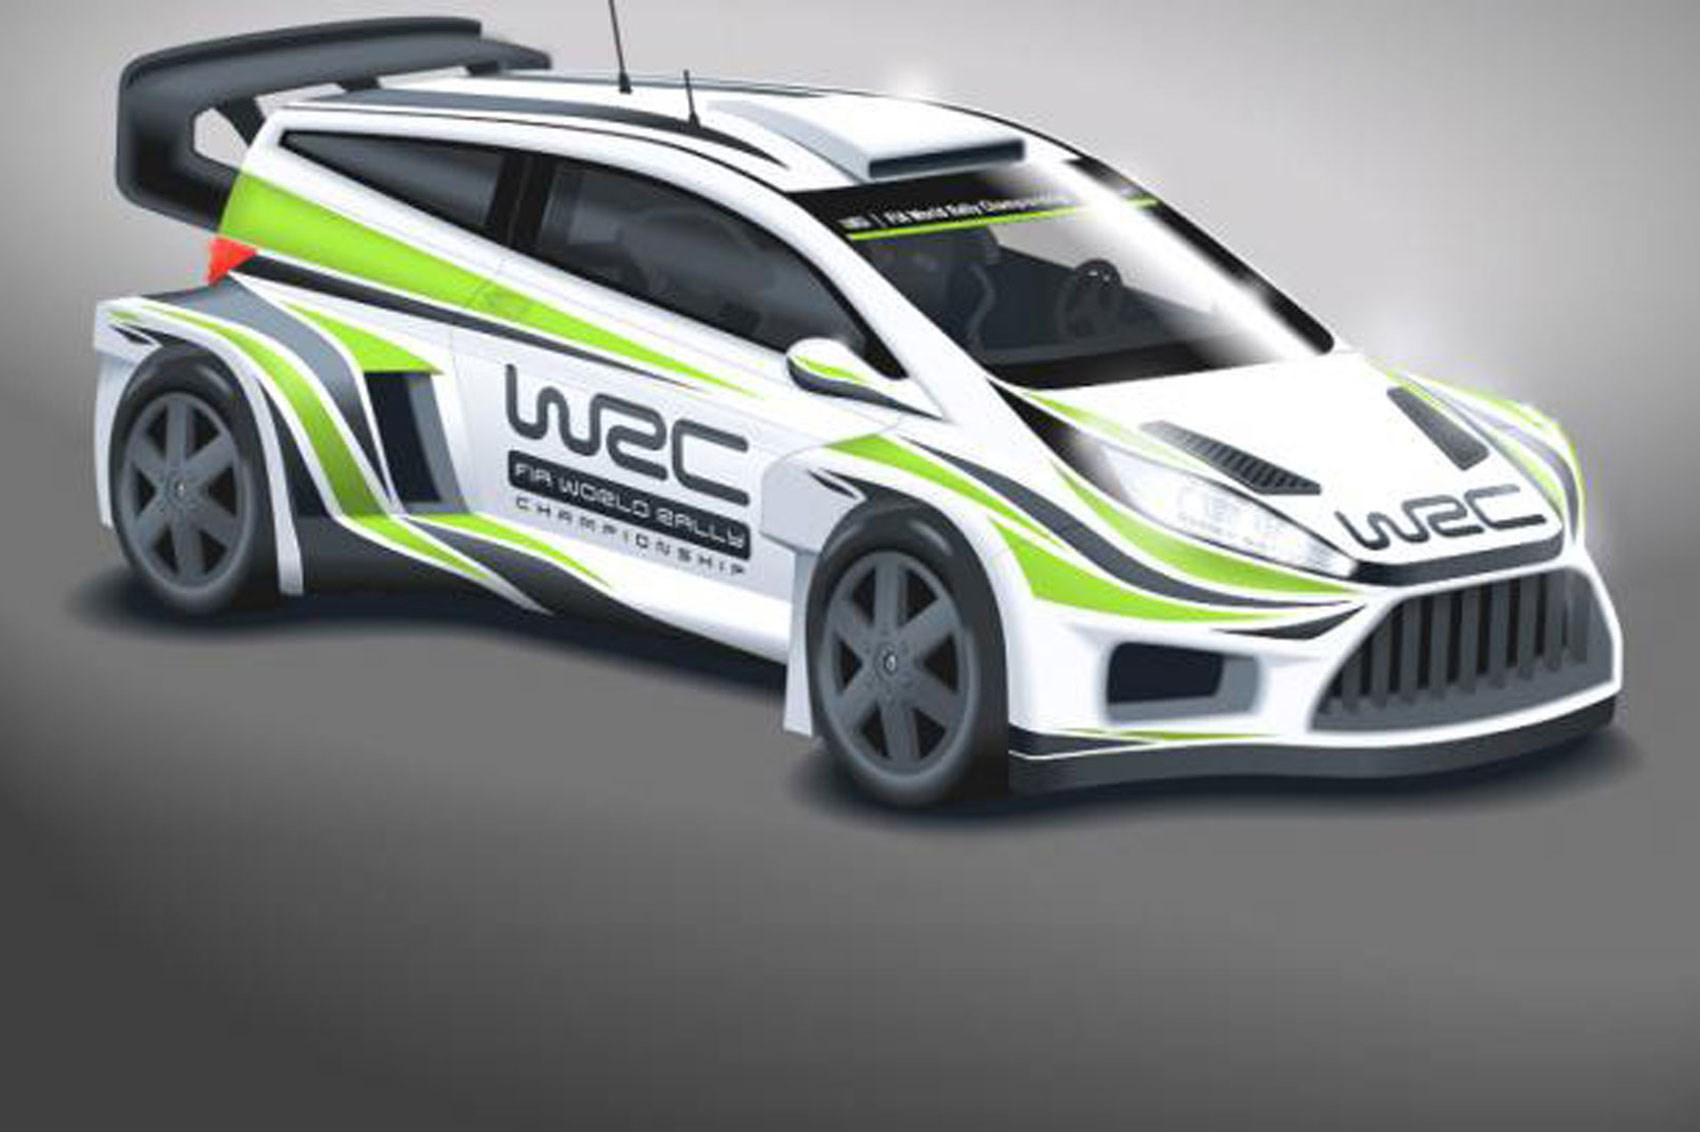 Ultrablogus  Pleasing Wild New Look For Wrc Cars In  By Car Magazine With Exquisite Wrc Cars Will Get Wider Bodies Bigger Wings And More Power For  With Cool  Chevelle Interior Also  Ford Ranger Interior Parts In Addition F Interior And Interior Sliding Door Panels As Well As Bmw M Interior Trim Additionally Toyota Prius C Interior From Carmagazinecouk With Ultrablogus  Exquisite Wild New Look For Wrc Cars In  By Car Magazine With Cool Wrc Cars Will Get Wider Bodies Bigger Wings And More Power For  And Pleasing  Chevelle Interior Also  Ford Ranger Interior Parts In Addition F Interior From Carmagazinecouk